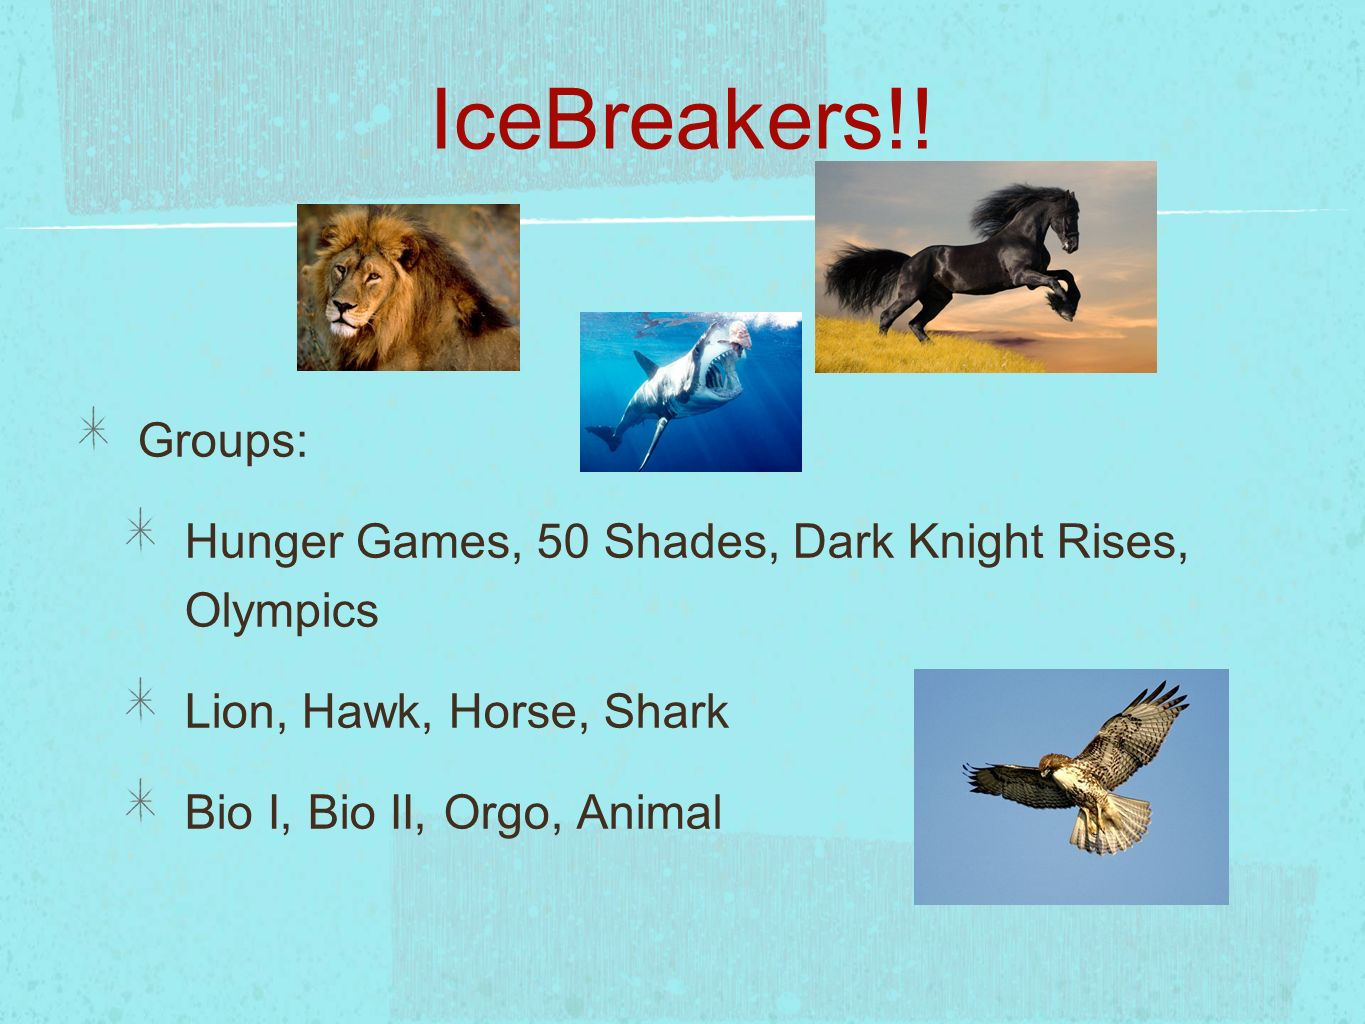 IceBreakers!!Groups: Hunger Games, 50 Shades, Dark Knight Rises, Olympics. Lion, Hawk, Horse, Shark.